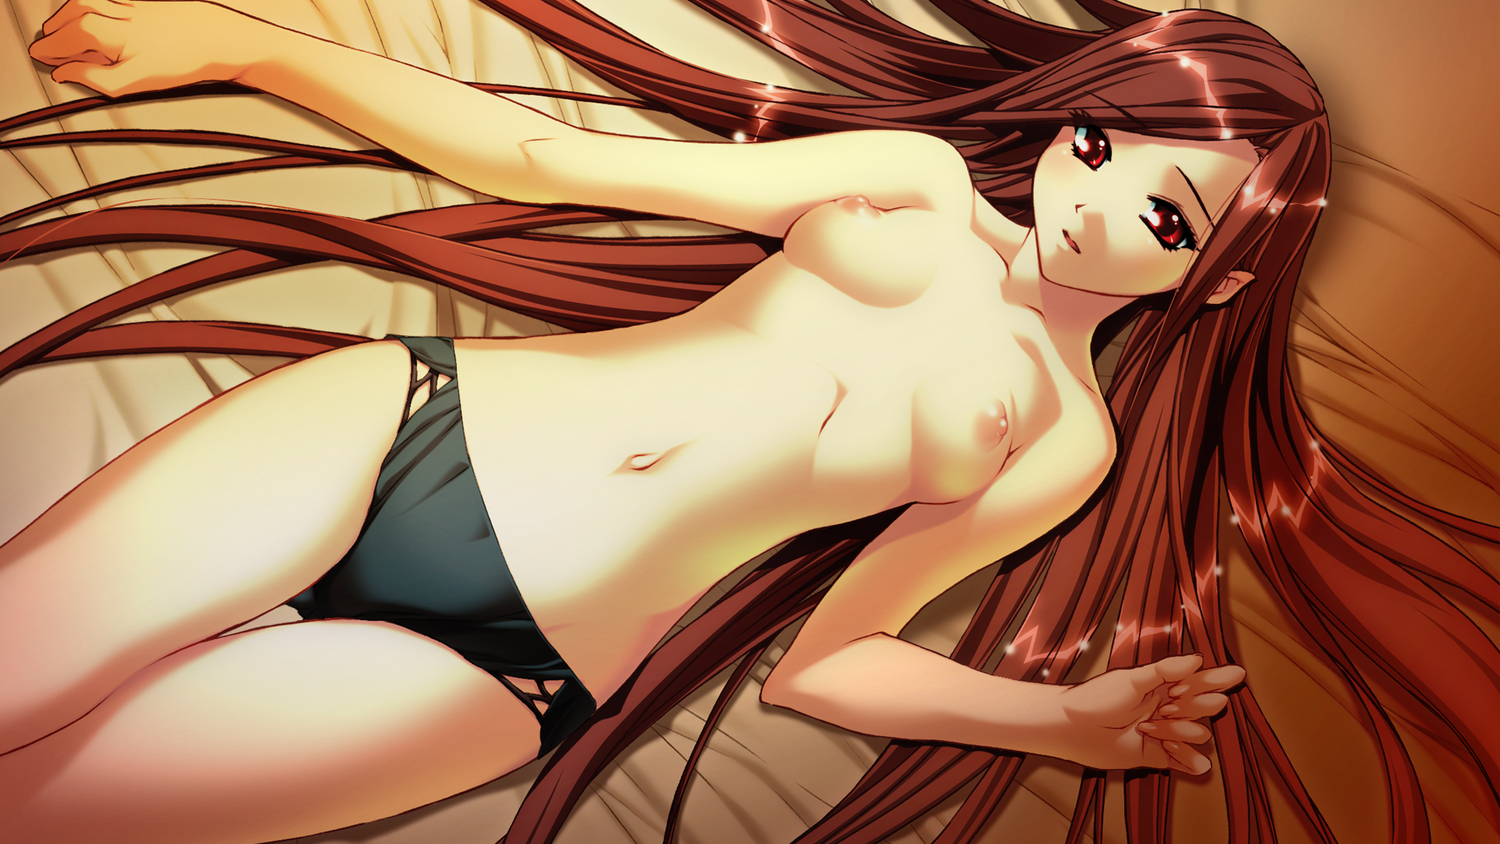 bed breasts brown_hair game_cg ino izayoi_no_hanayome kiryuu_iyori long_hair nipples panties topless underwear